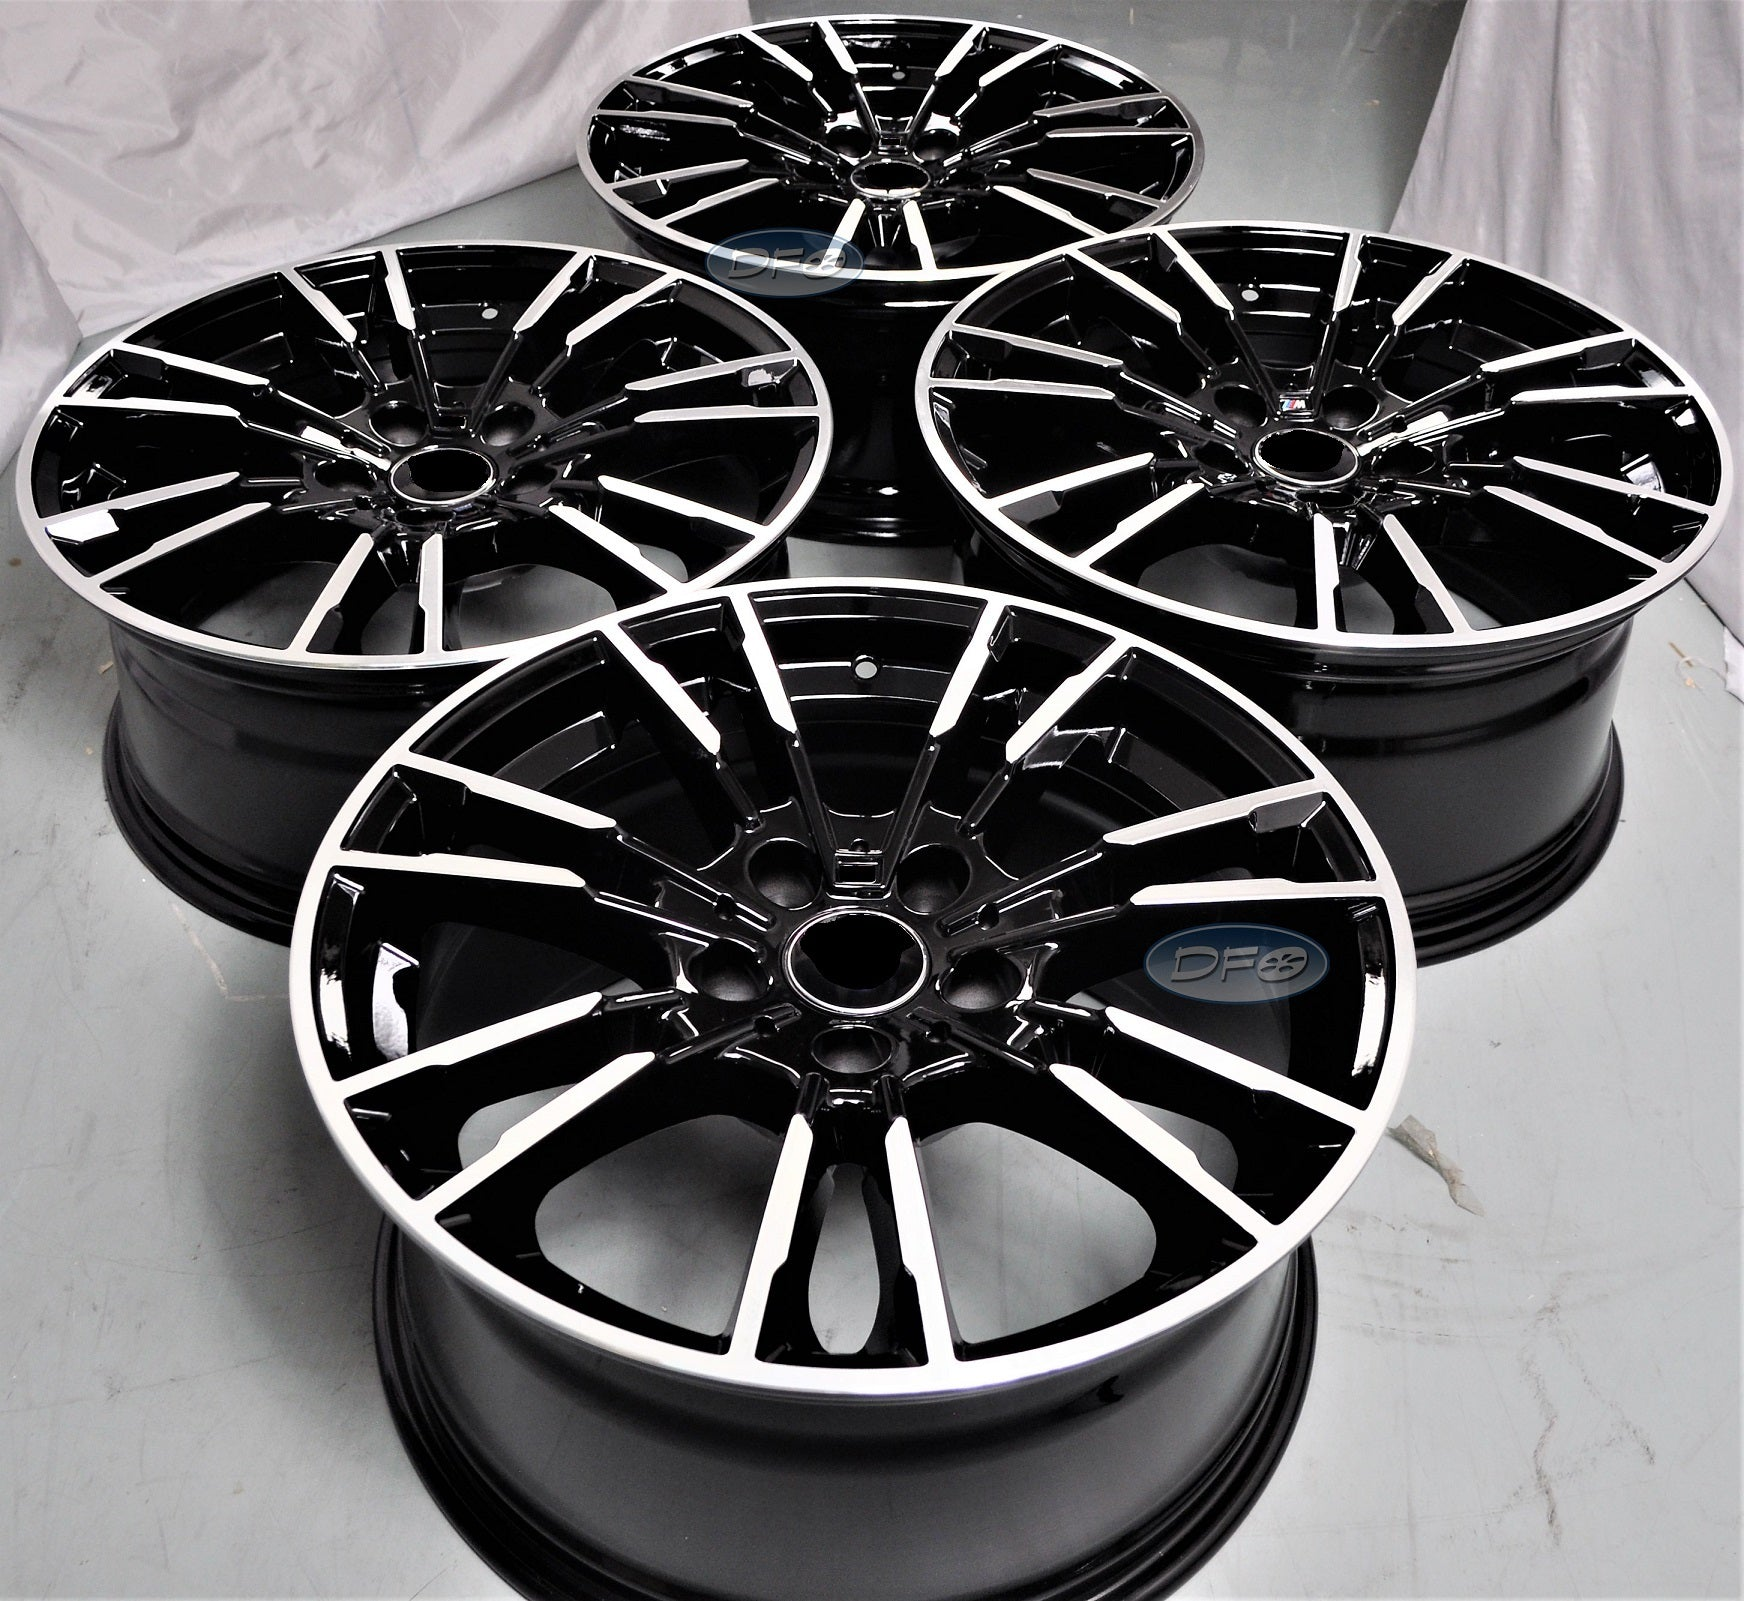 19 Inch Staggered Black Wheels Rims Full Set Of 4 Fit For Bmw 1 2 Md Auto Workshop